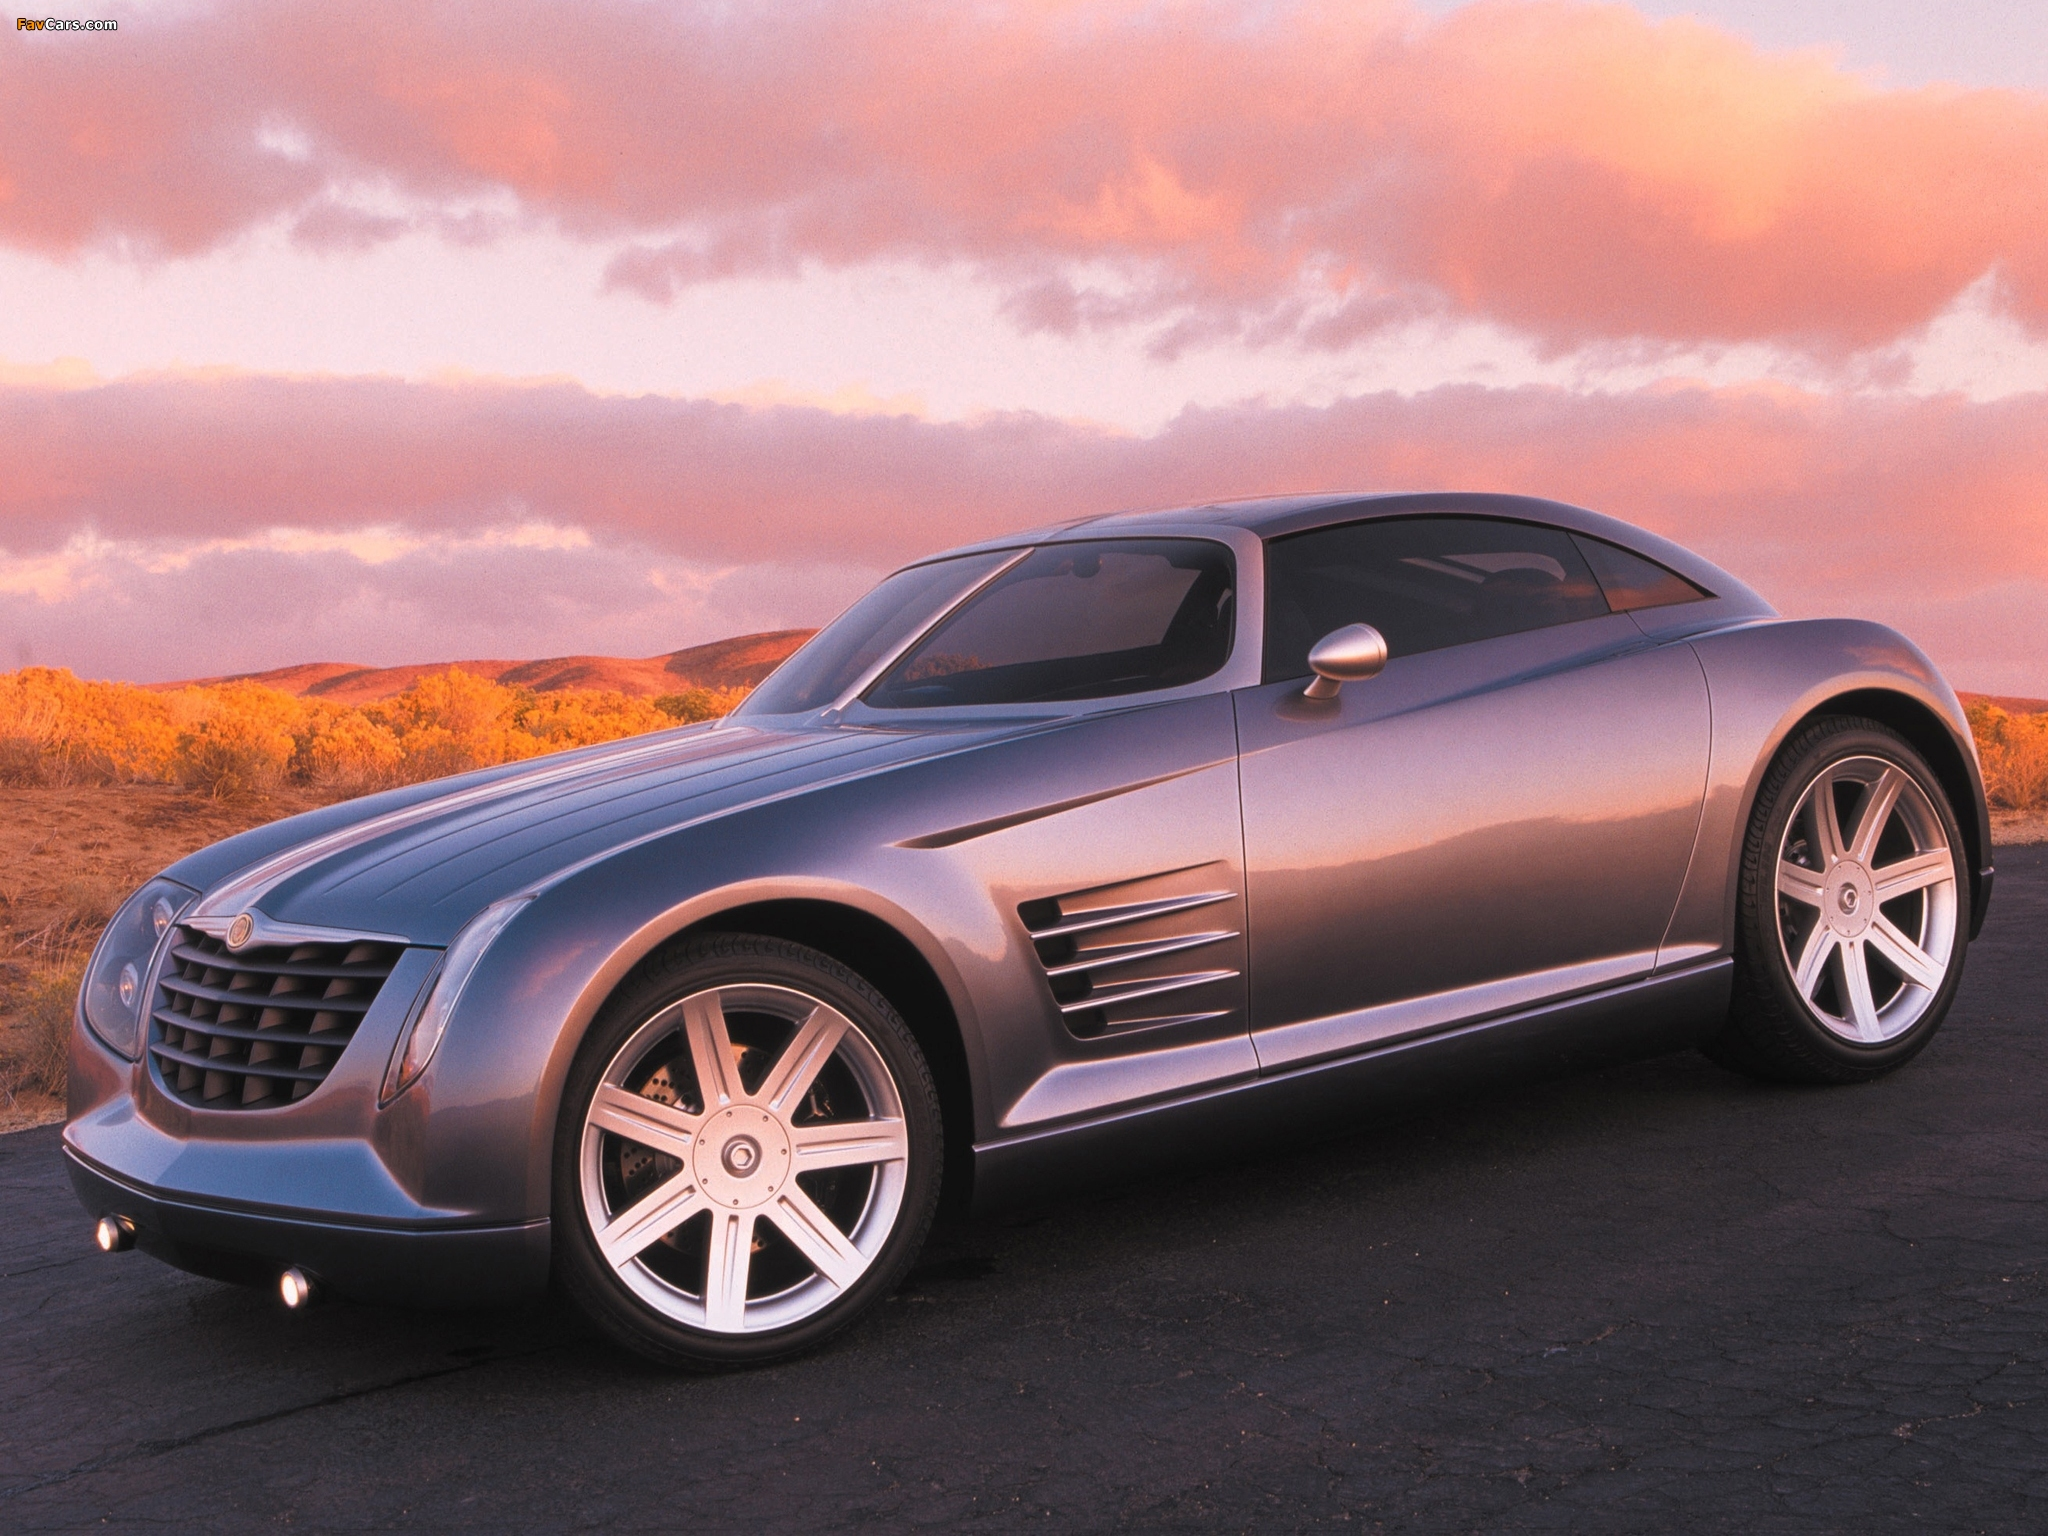 Chrysler Crossfire Concept 2001 wallpapers (2048 x 1536)